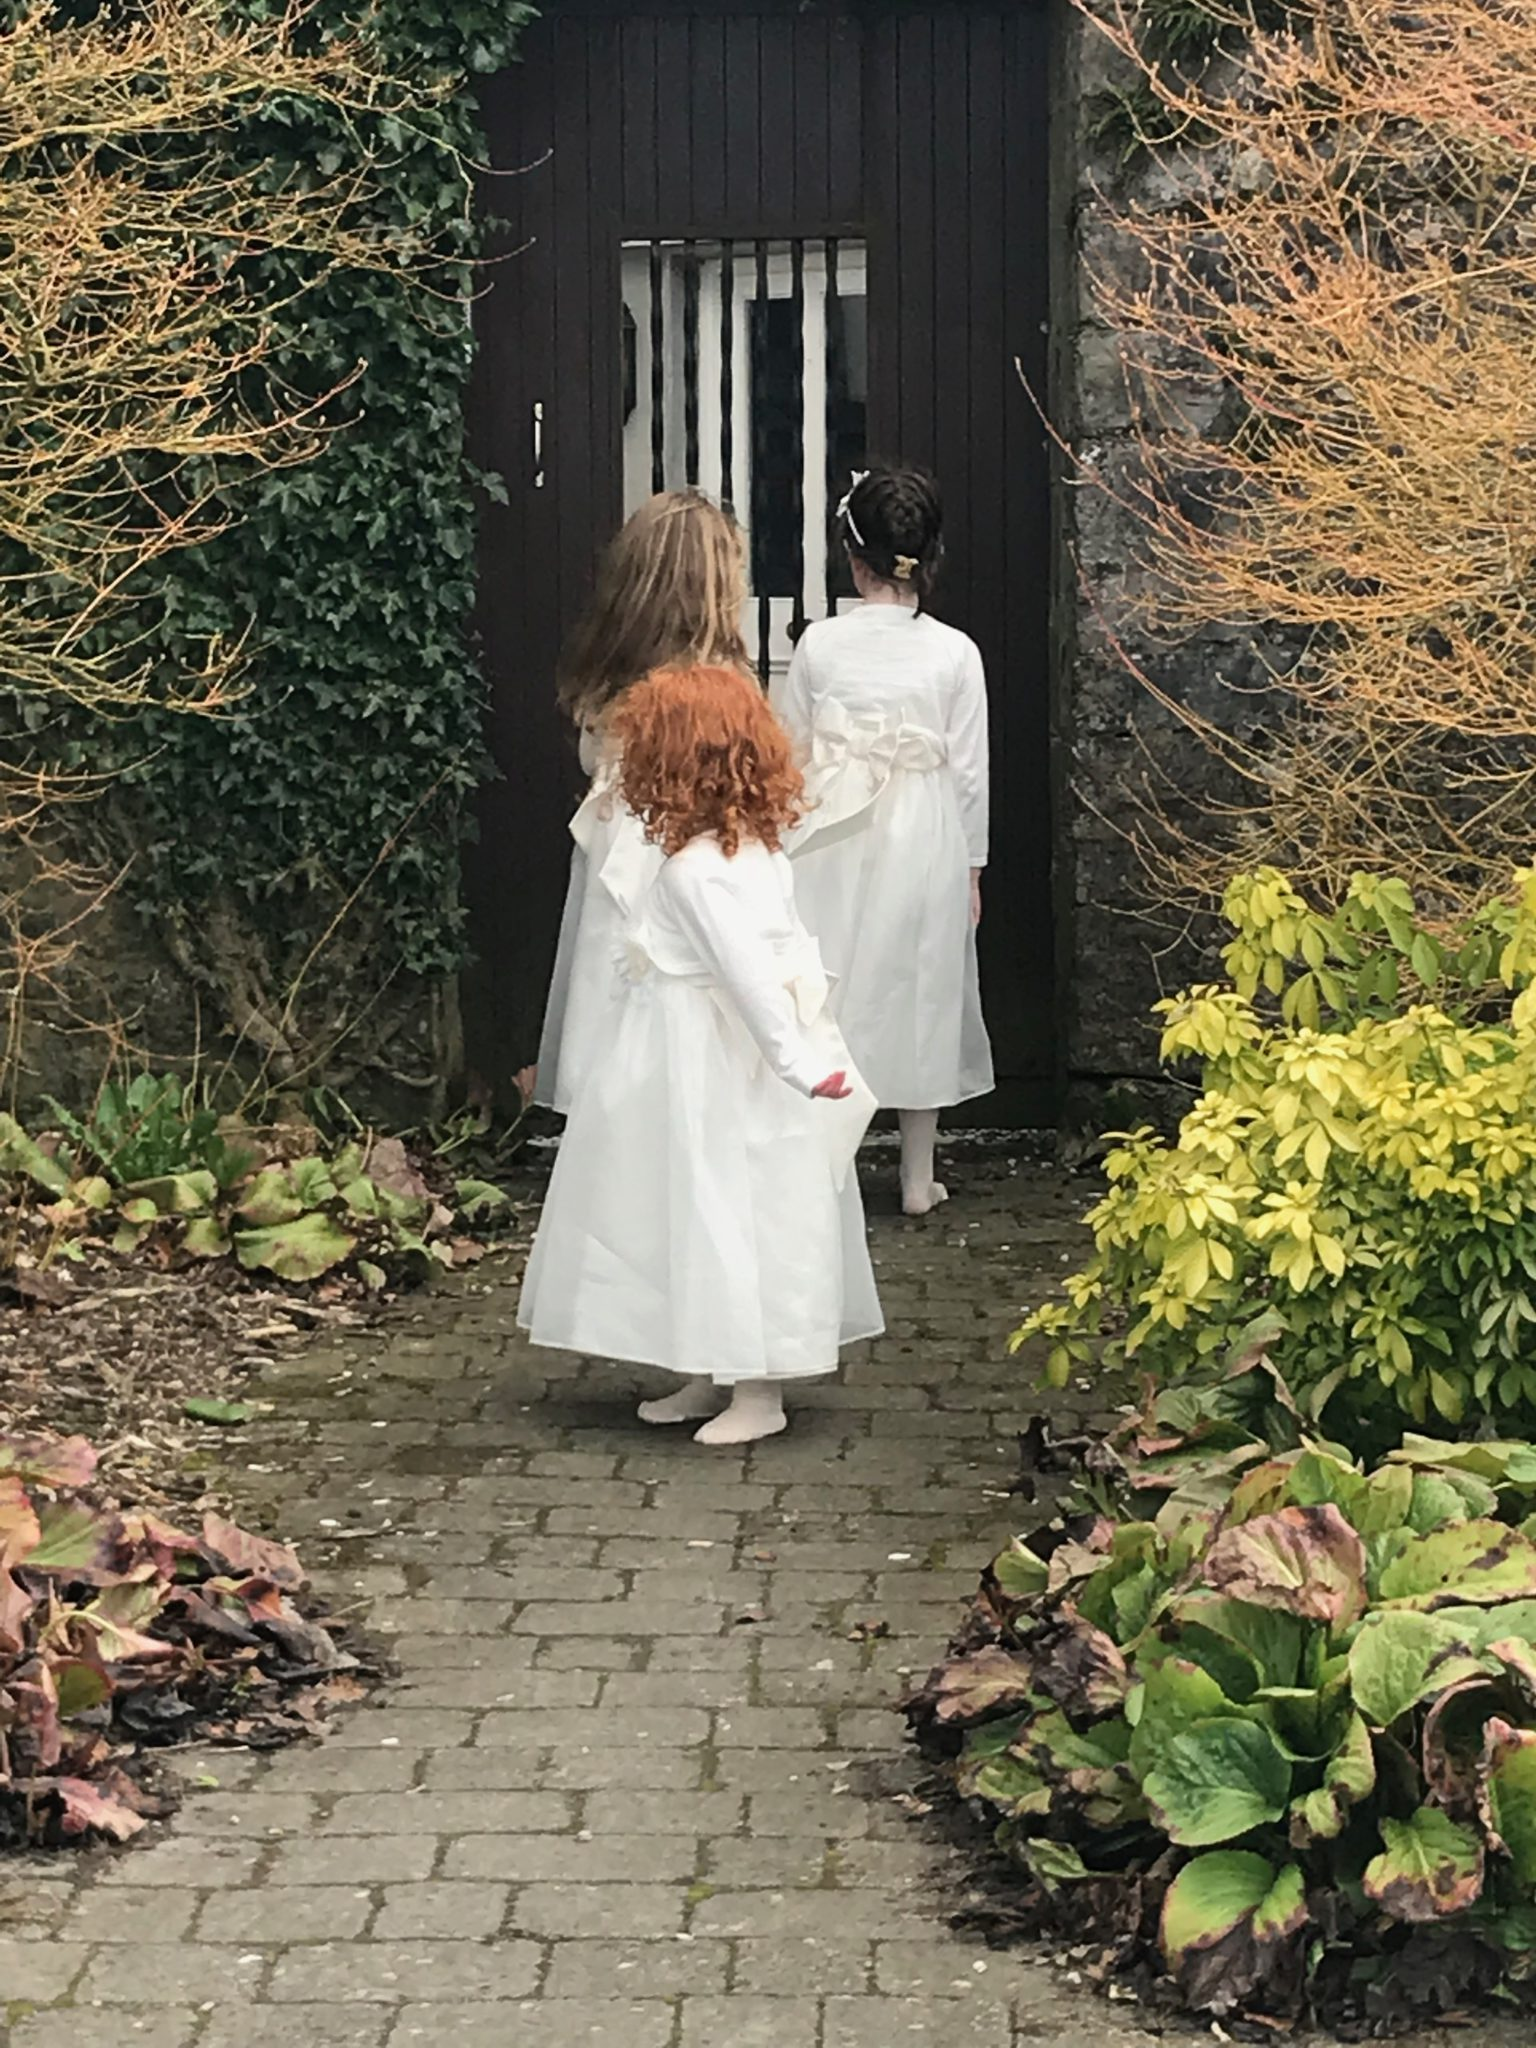 Such a lovely weekend! I was invited to mind the 3 flowers girls at Mary and David wedding last weekend in Durrow Castle ( Co. Laois). It was my first long trip to babysit and really worth as we had such a lovely time!